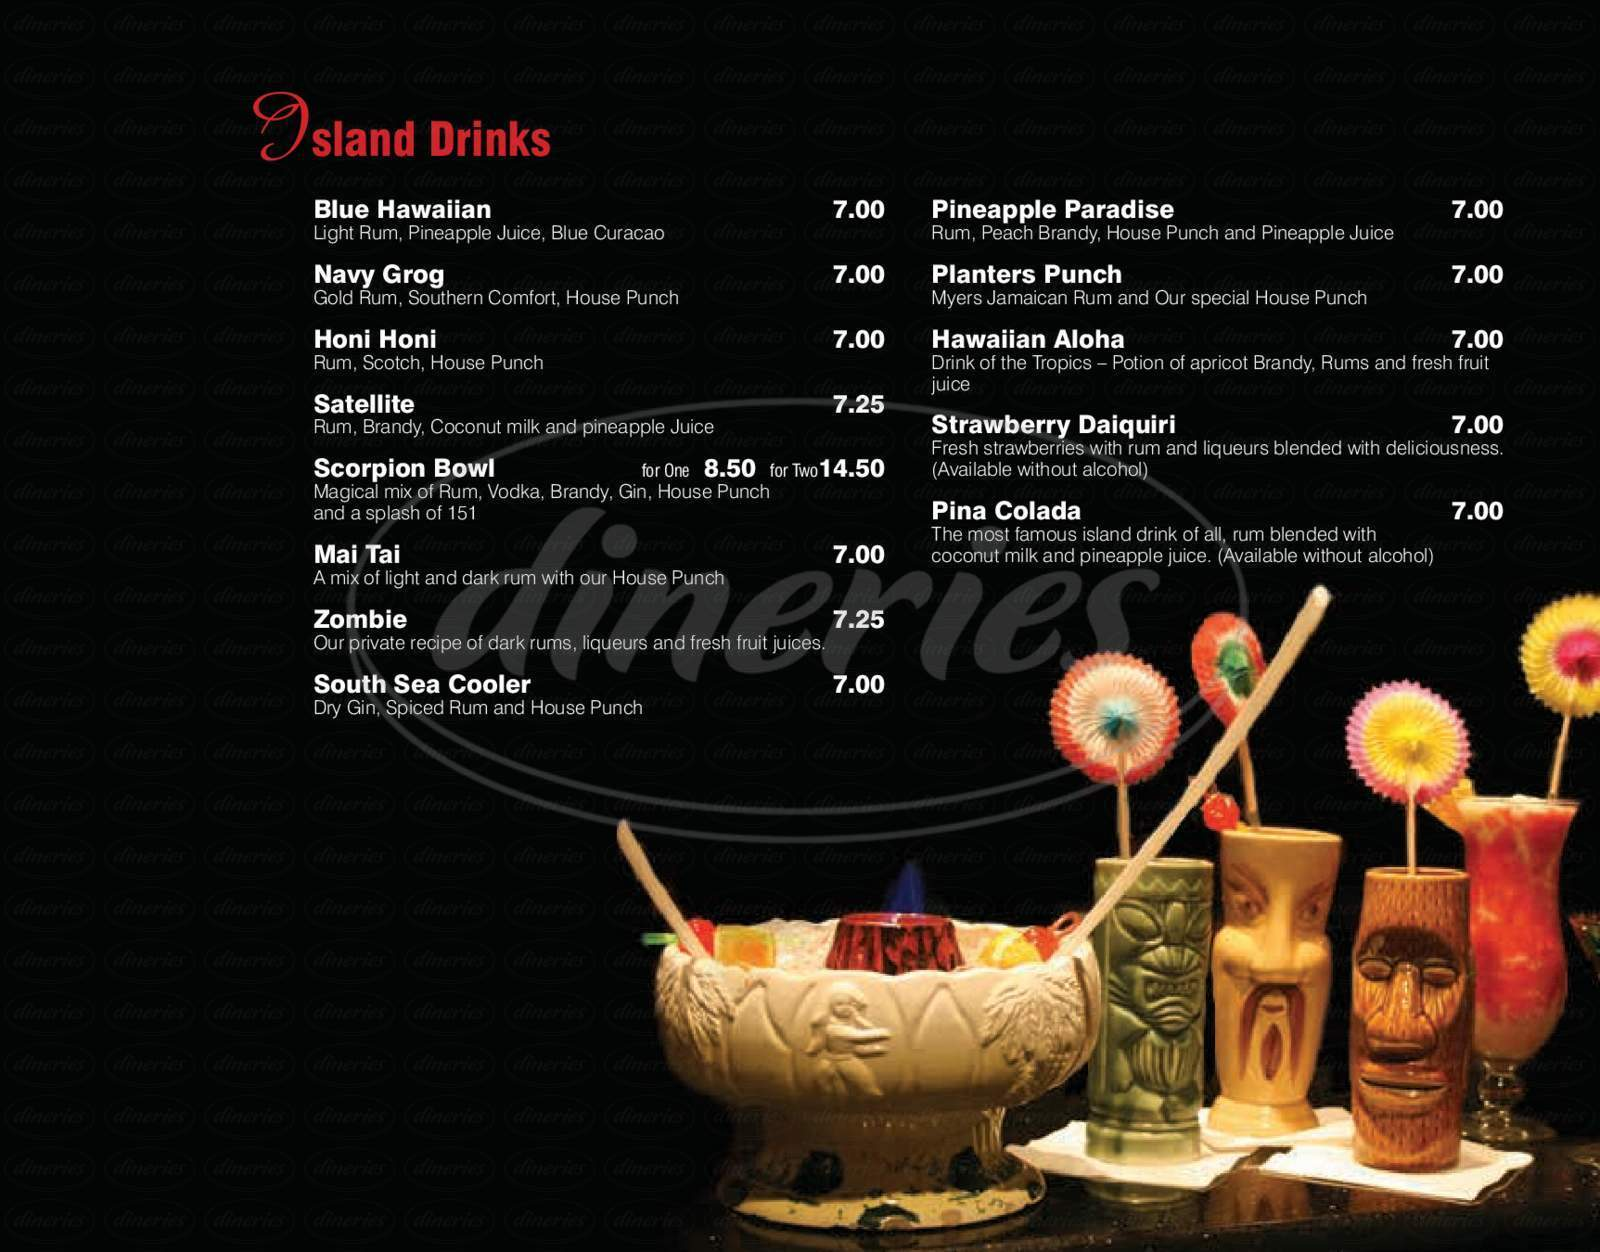 menu for China Pavilion